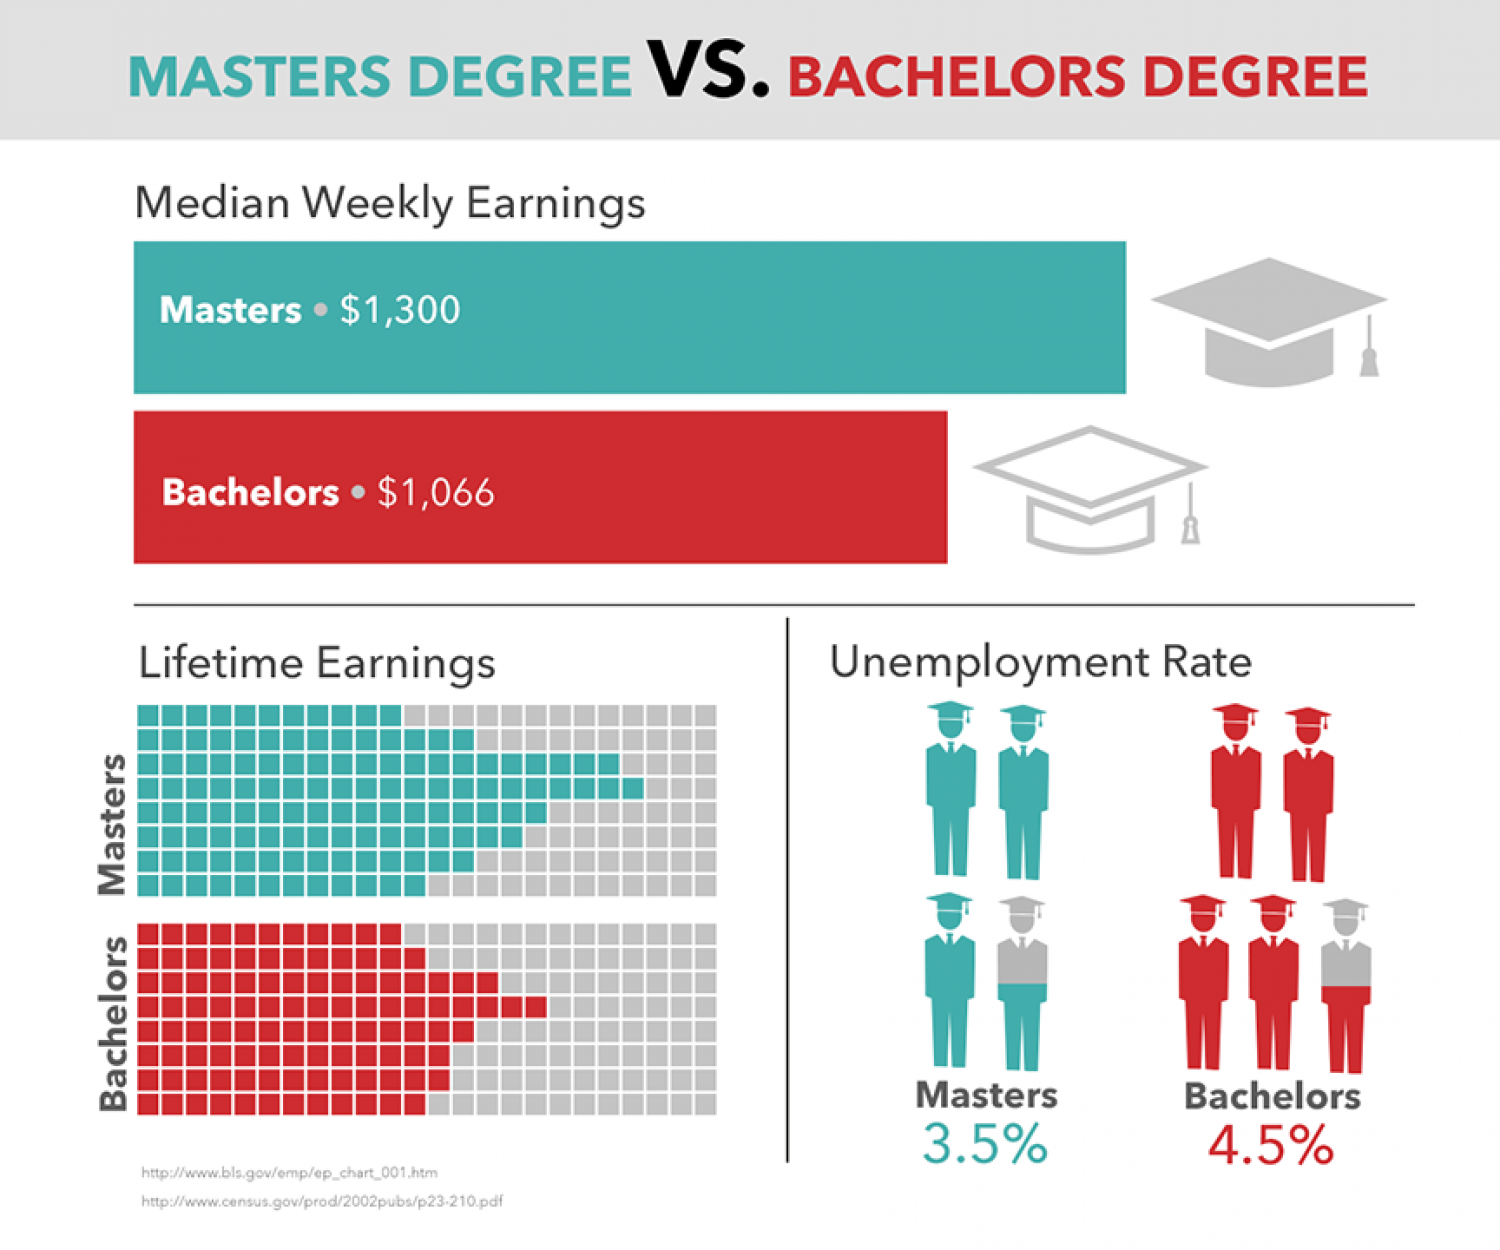 Masters Degree vs. Bachelors Degree Infographic